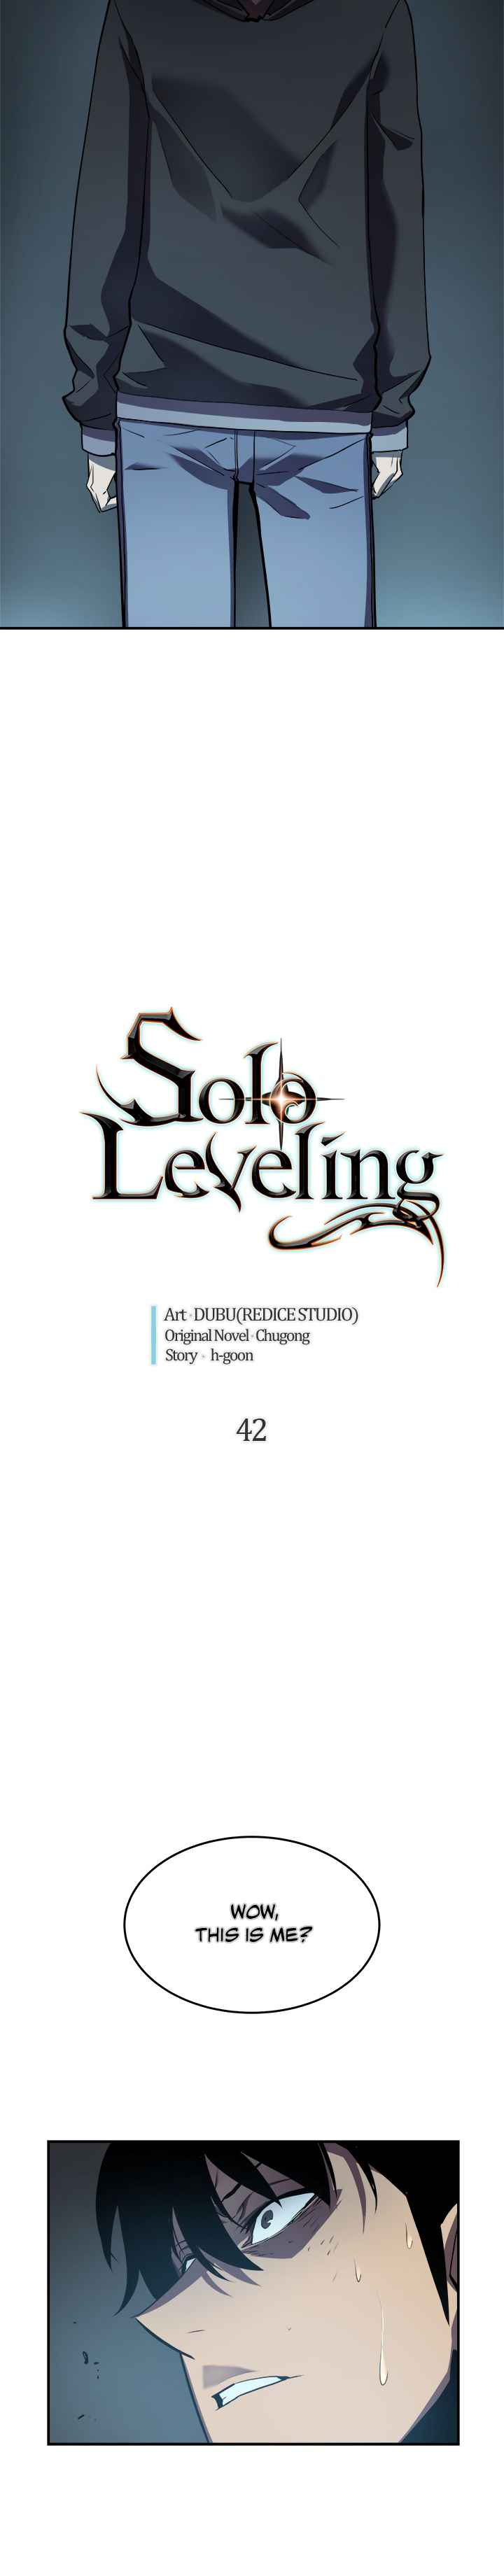 Solo Leveling Chapter 42 Page 2